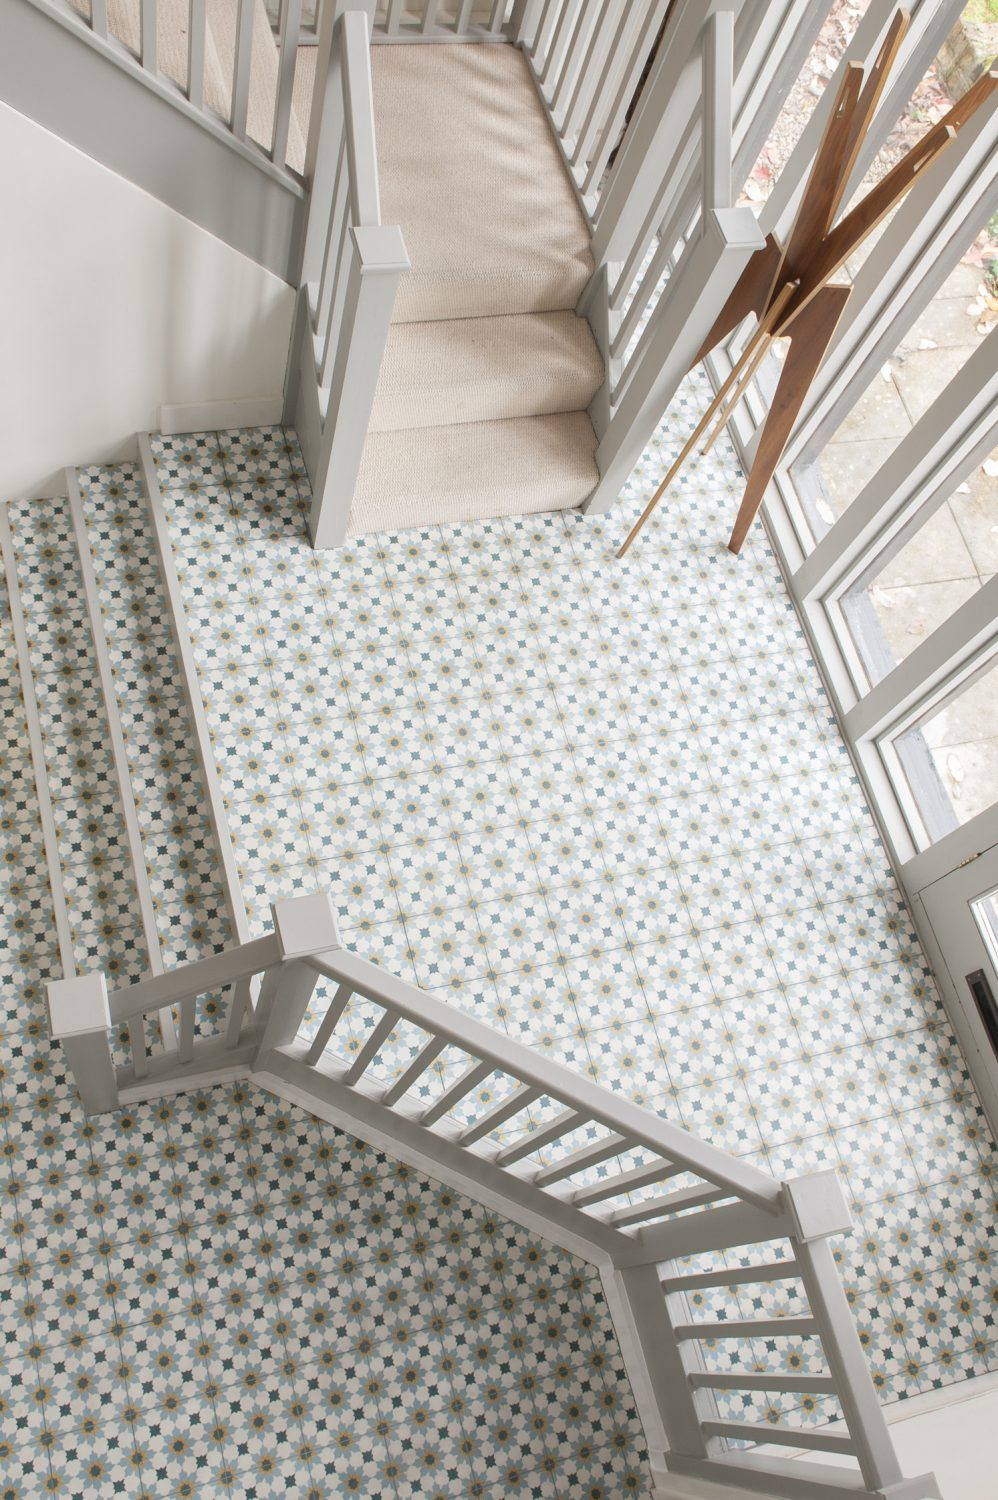 The entrance hall flooring tiles are by Ca'Pietra